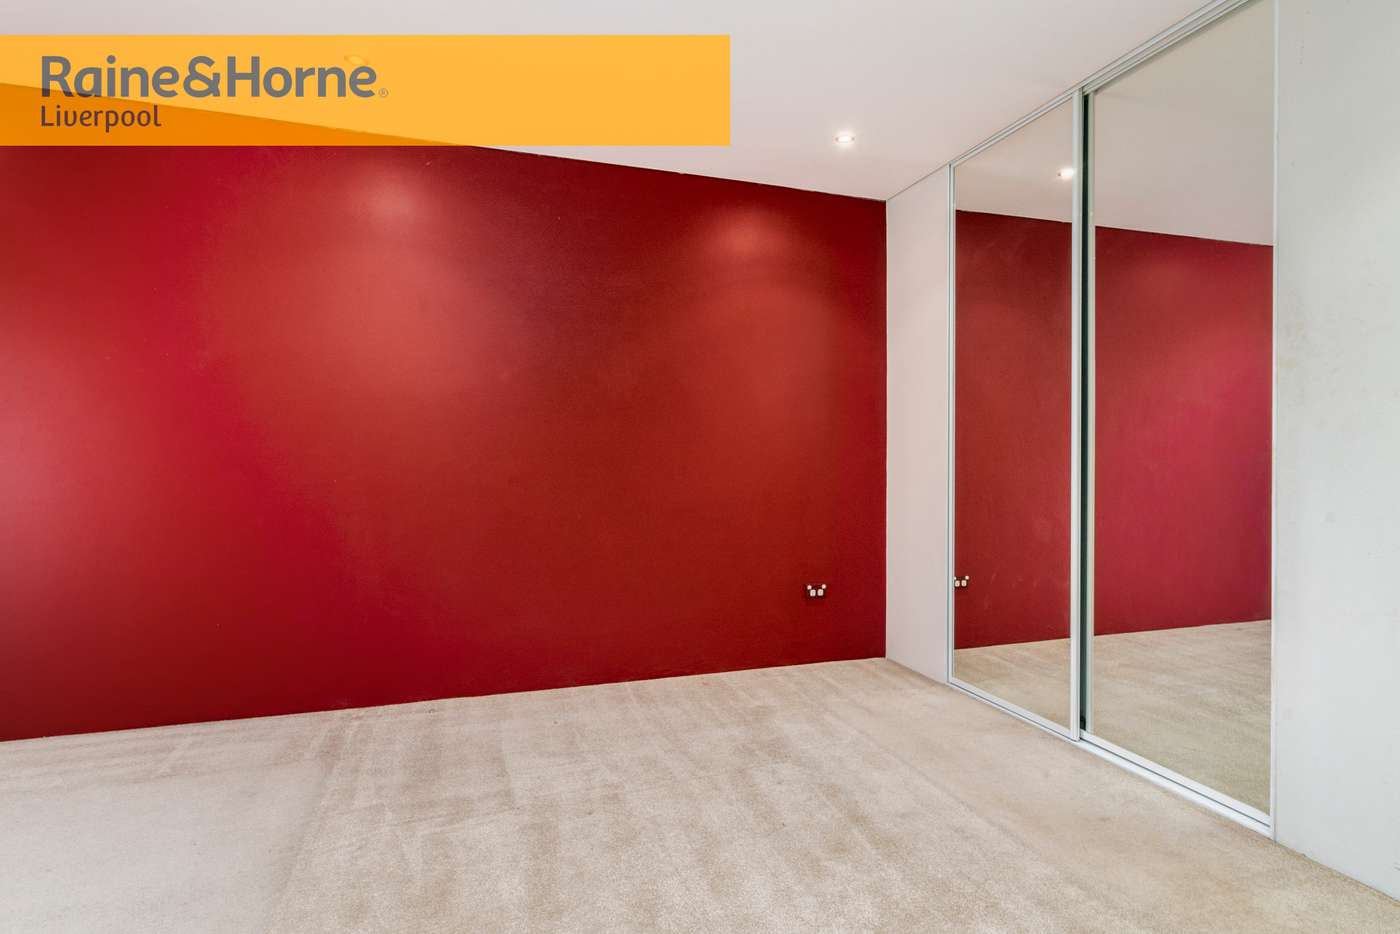 Sixth view of Homely unit listing, 5/49 Bathurst Street, Liverpool NSW 2170